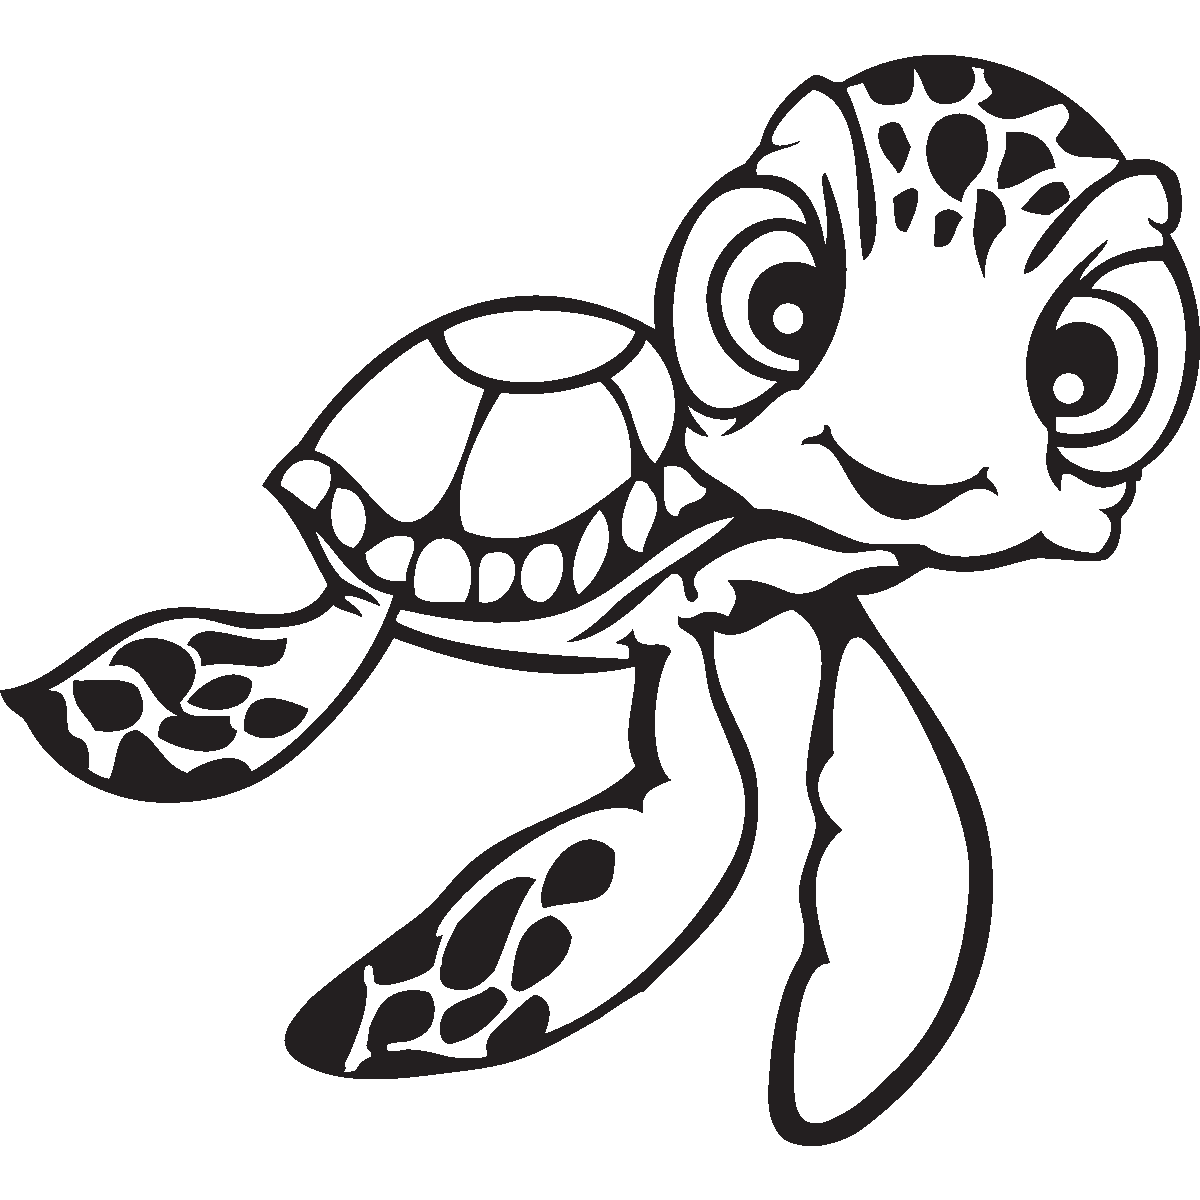 nemo turtle artwork black and white - Google Search | Disney ...